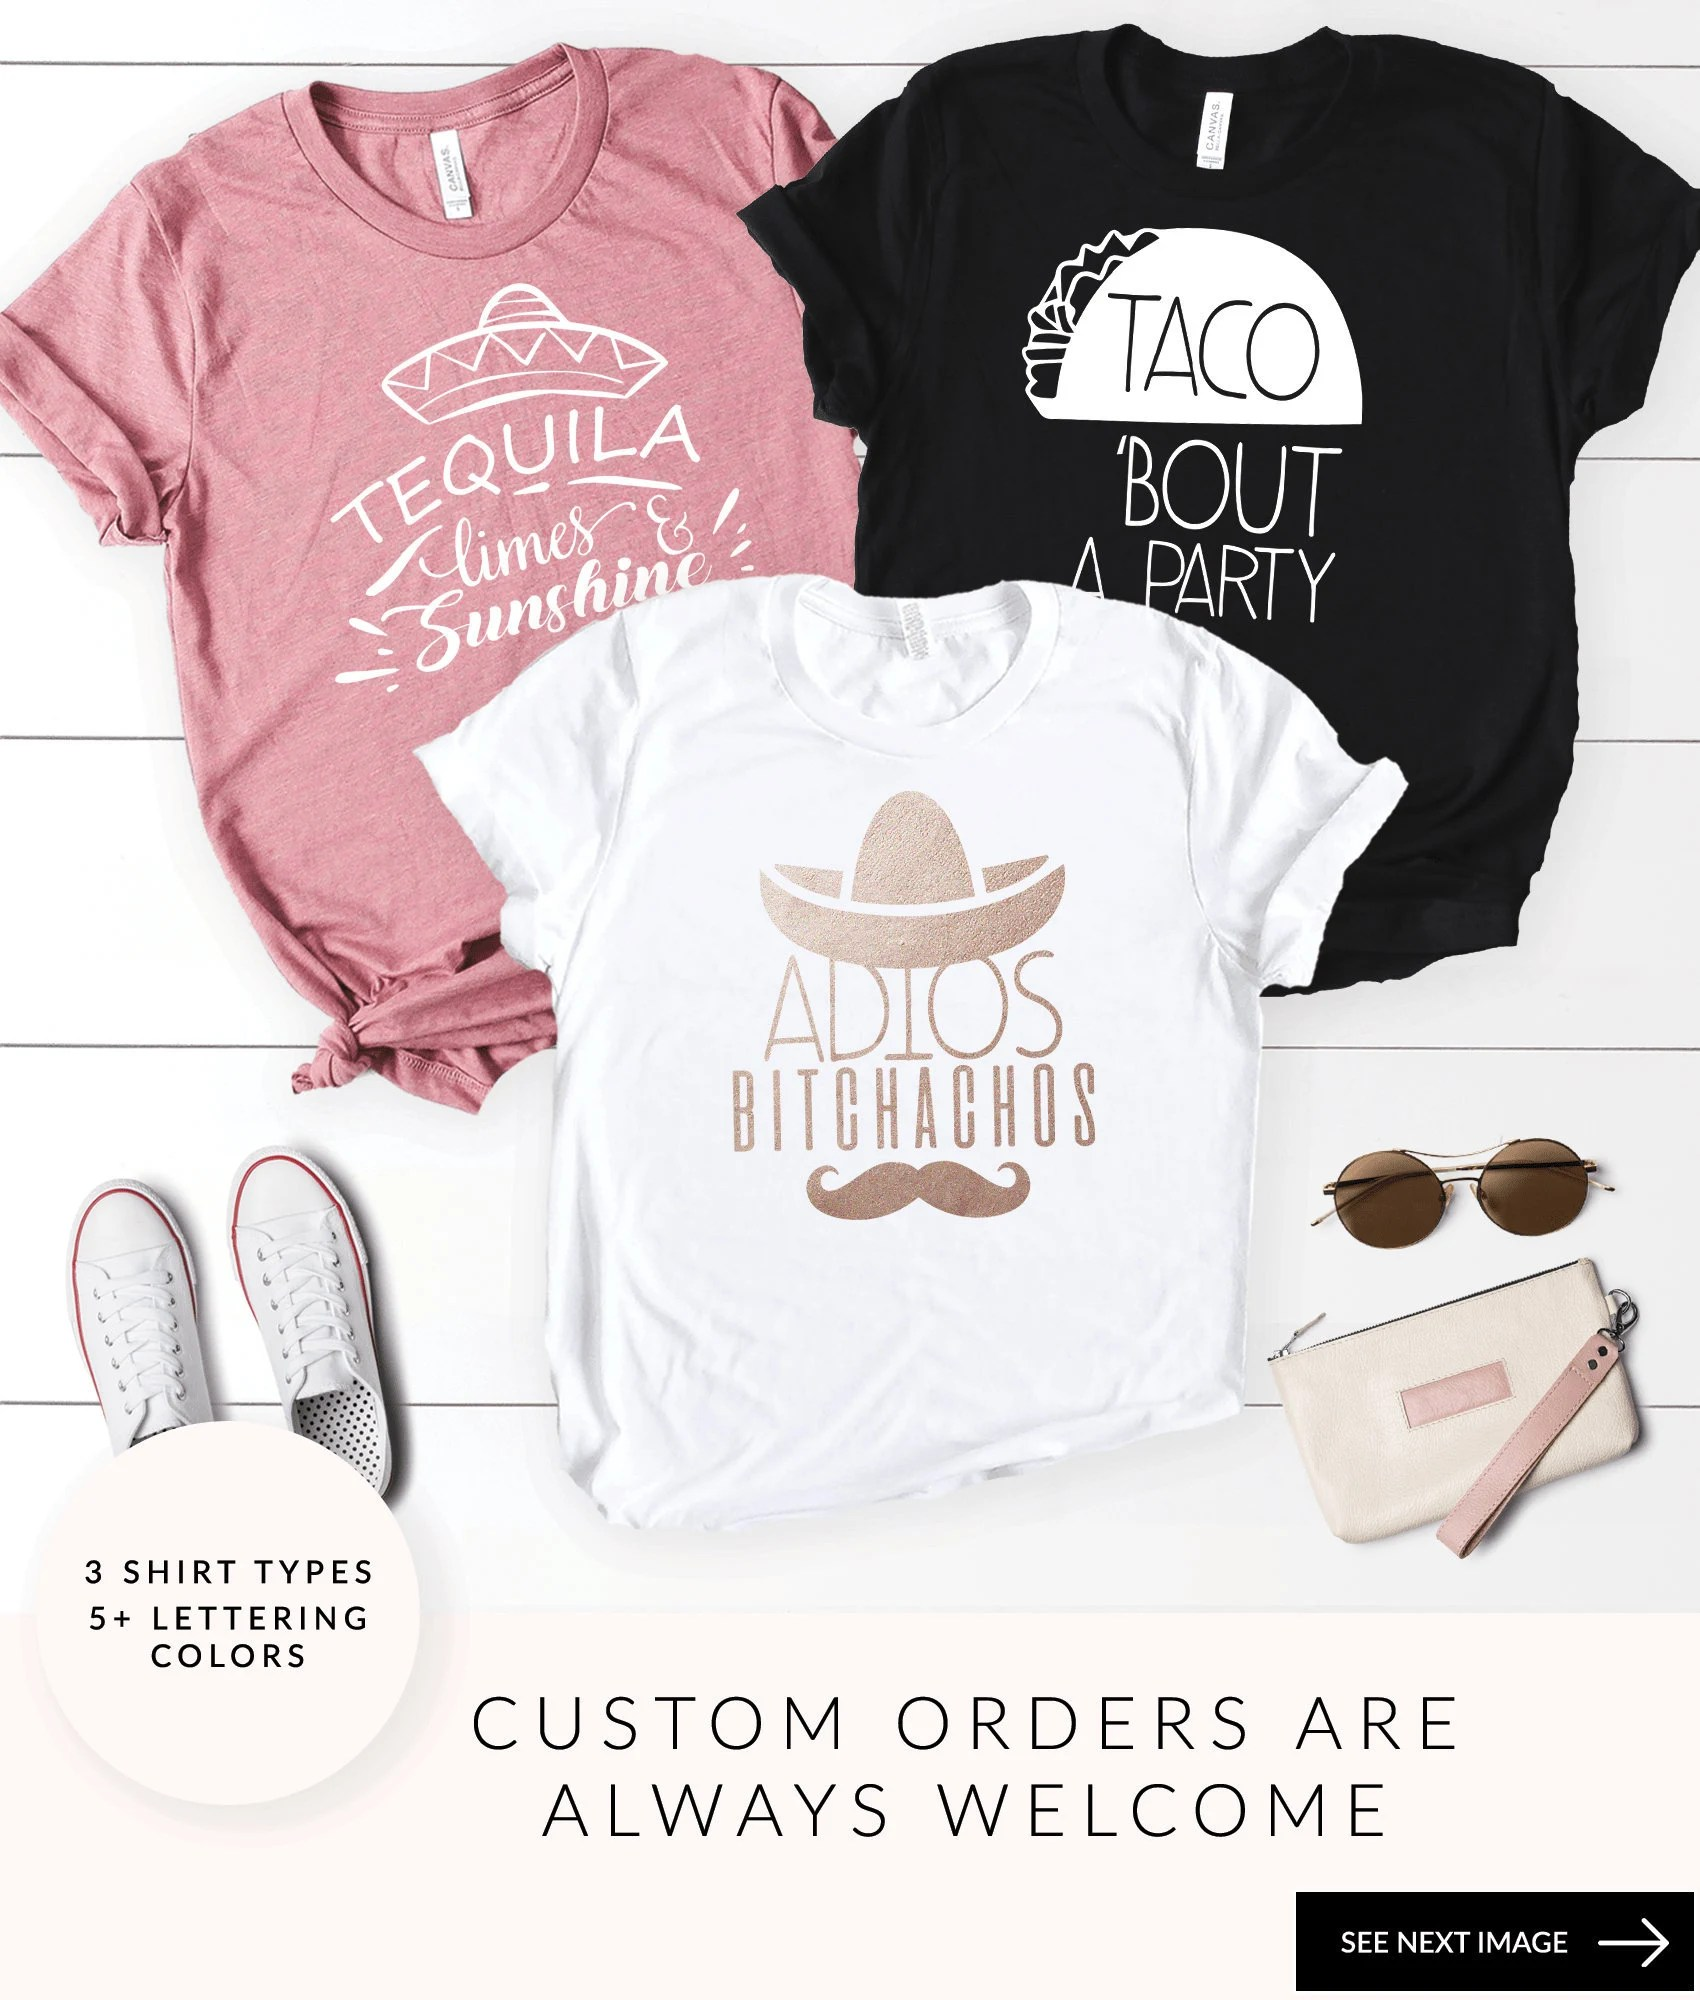 Aqqqqqqdq                                                                                                                   More colours                                                                                        Mexico Bachelorette Shirts, Bachelorette Party Shirts, Adios Bitchachos Shirt, Tequila Shirts, Tacos And Tequila, Funny Shirt                                                                    Quteez                               5 out of 5 stars                                                                                                                                                                                                                                                          (3,371)                                                                                   CA$17.70                                                                             CA$29.50                                                              CA$29.50                                                                                               (40% off)